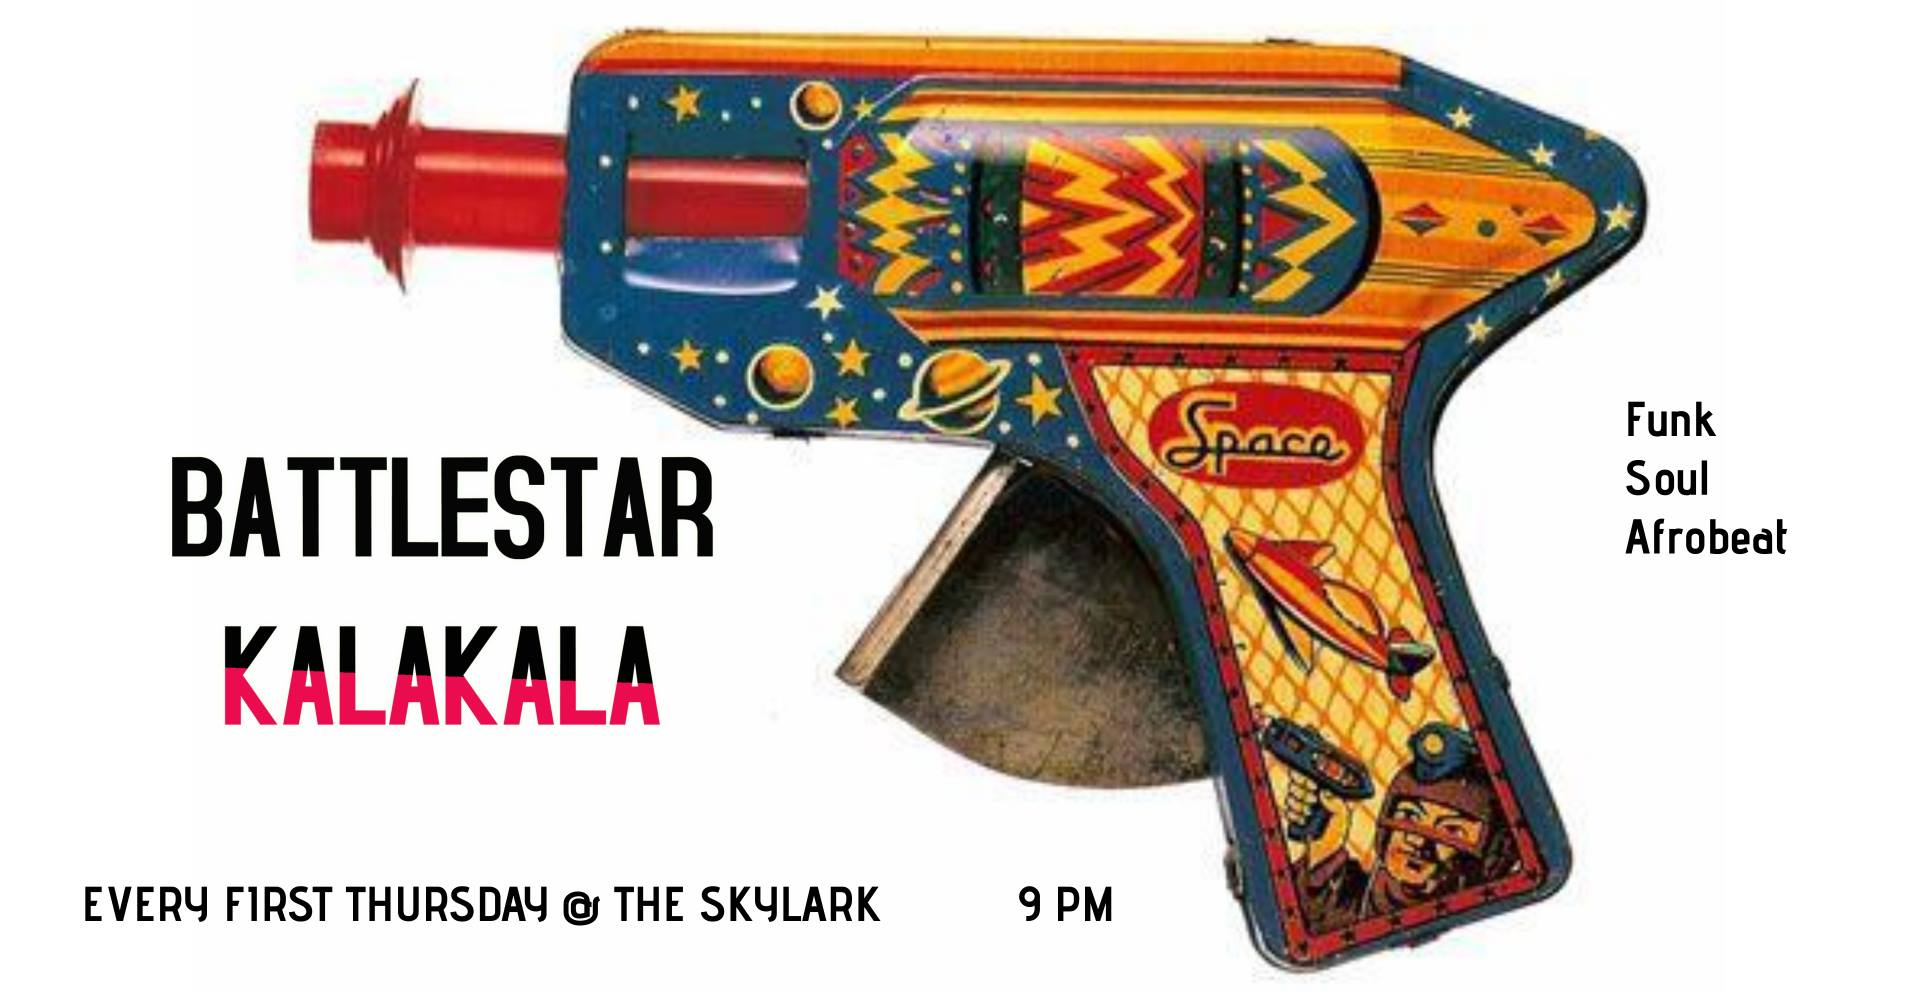 """BATTLESTAR KALAKALA continues the tradition of #RareFunkGrooves and #DeepFunk on West Seattle Island. Featuring members of West Seattle Soul aka The Pulsations with some of Seattle's finest, and you! Skylark Cafe and Club 3803 Delridge Way SW $10 at the door Skylark asks for proof of vaccination or a negative Covid test within 48 hours for admission. Outside seating in the patio is available during the show. Check out the crew! Maurice Caldwell, Jr. • Vox Kevin Nortness • Tenor Sax K.O. Kate Olson • Bari/Soprano Saxes Mike """"Moose"""" Barber • Trumpet Jimmy Austin • Trombone Kent Halvorsen • Keys Chris O'Connor • Guitar Danny Godinez • Guitar Tige DeCoster • Bass Adam Gross • Drums Tor Dietrichson • Percussion"""